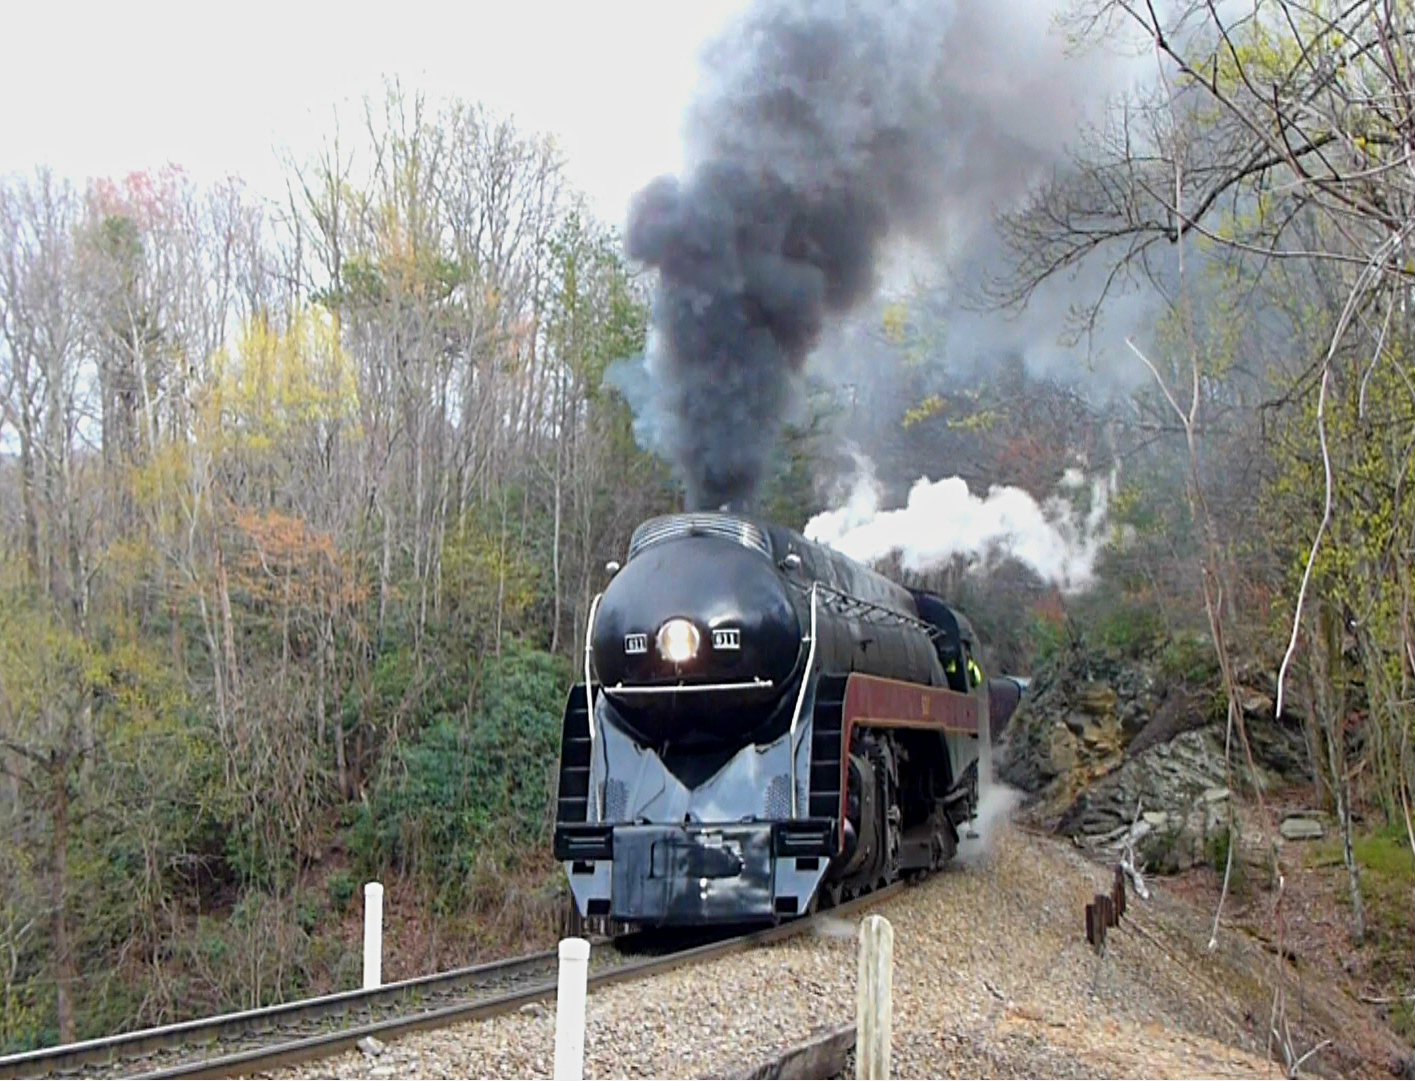 Large bullet-shaped steam locomotive traveling over train tracks in a wooded area